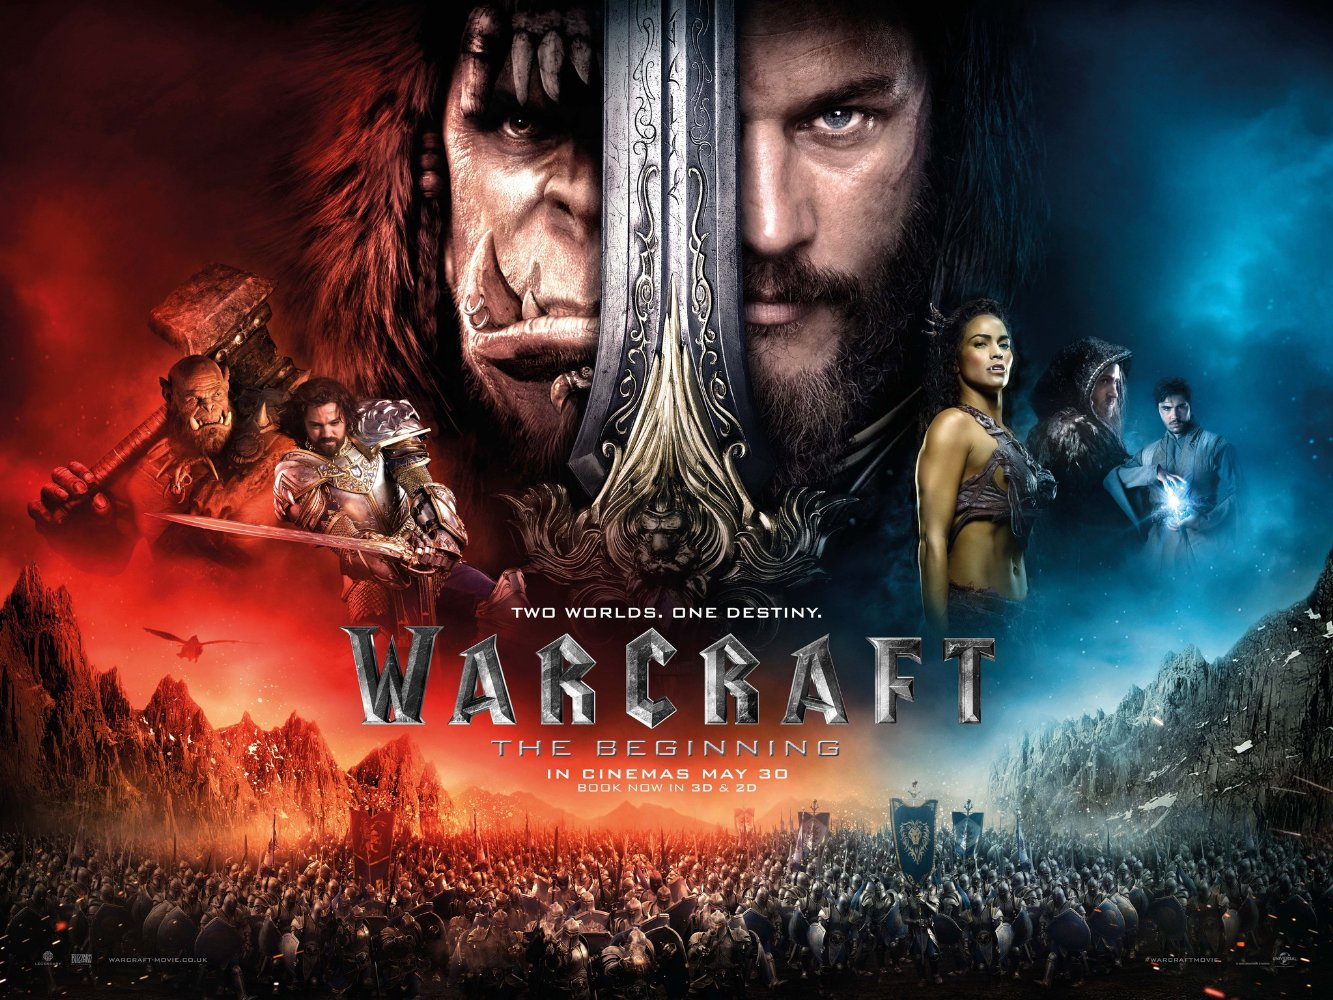 "SRETNI DOBITNICI ULAZNICA ZA FILM ""POČETAK"" (WARCRAFT: THE BEGINNING)"